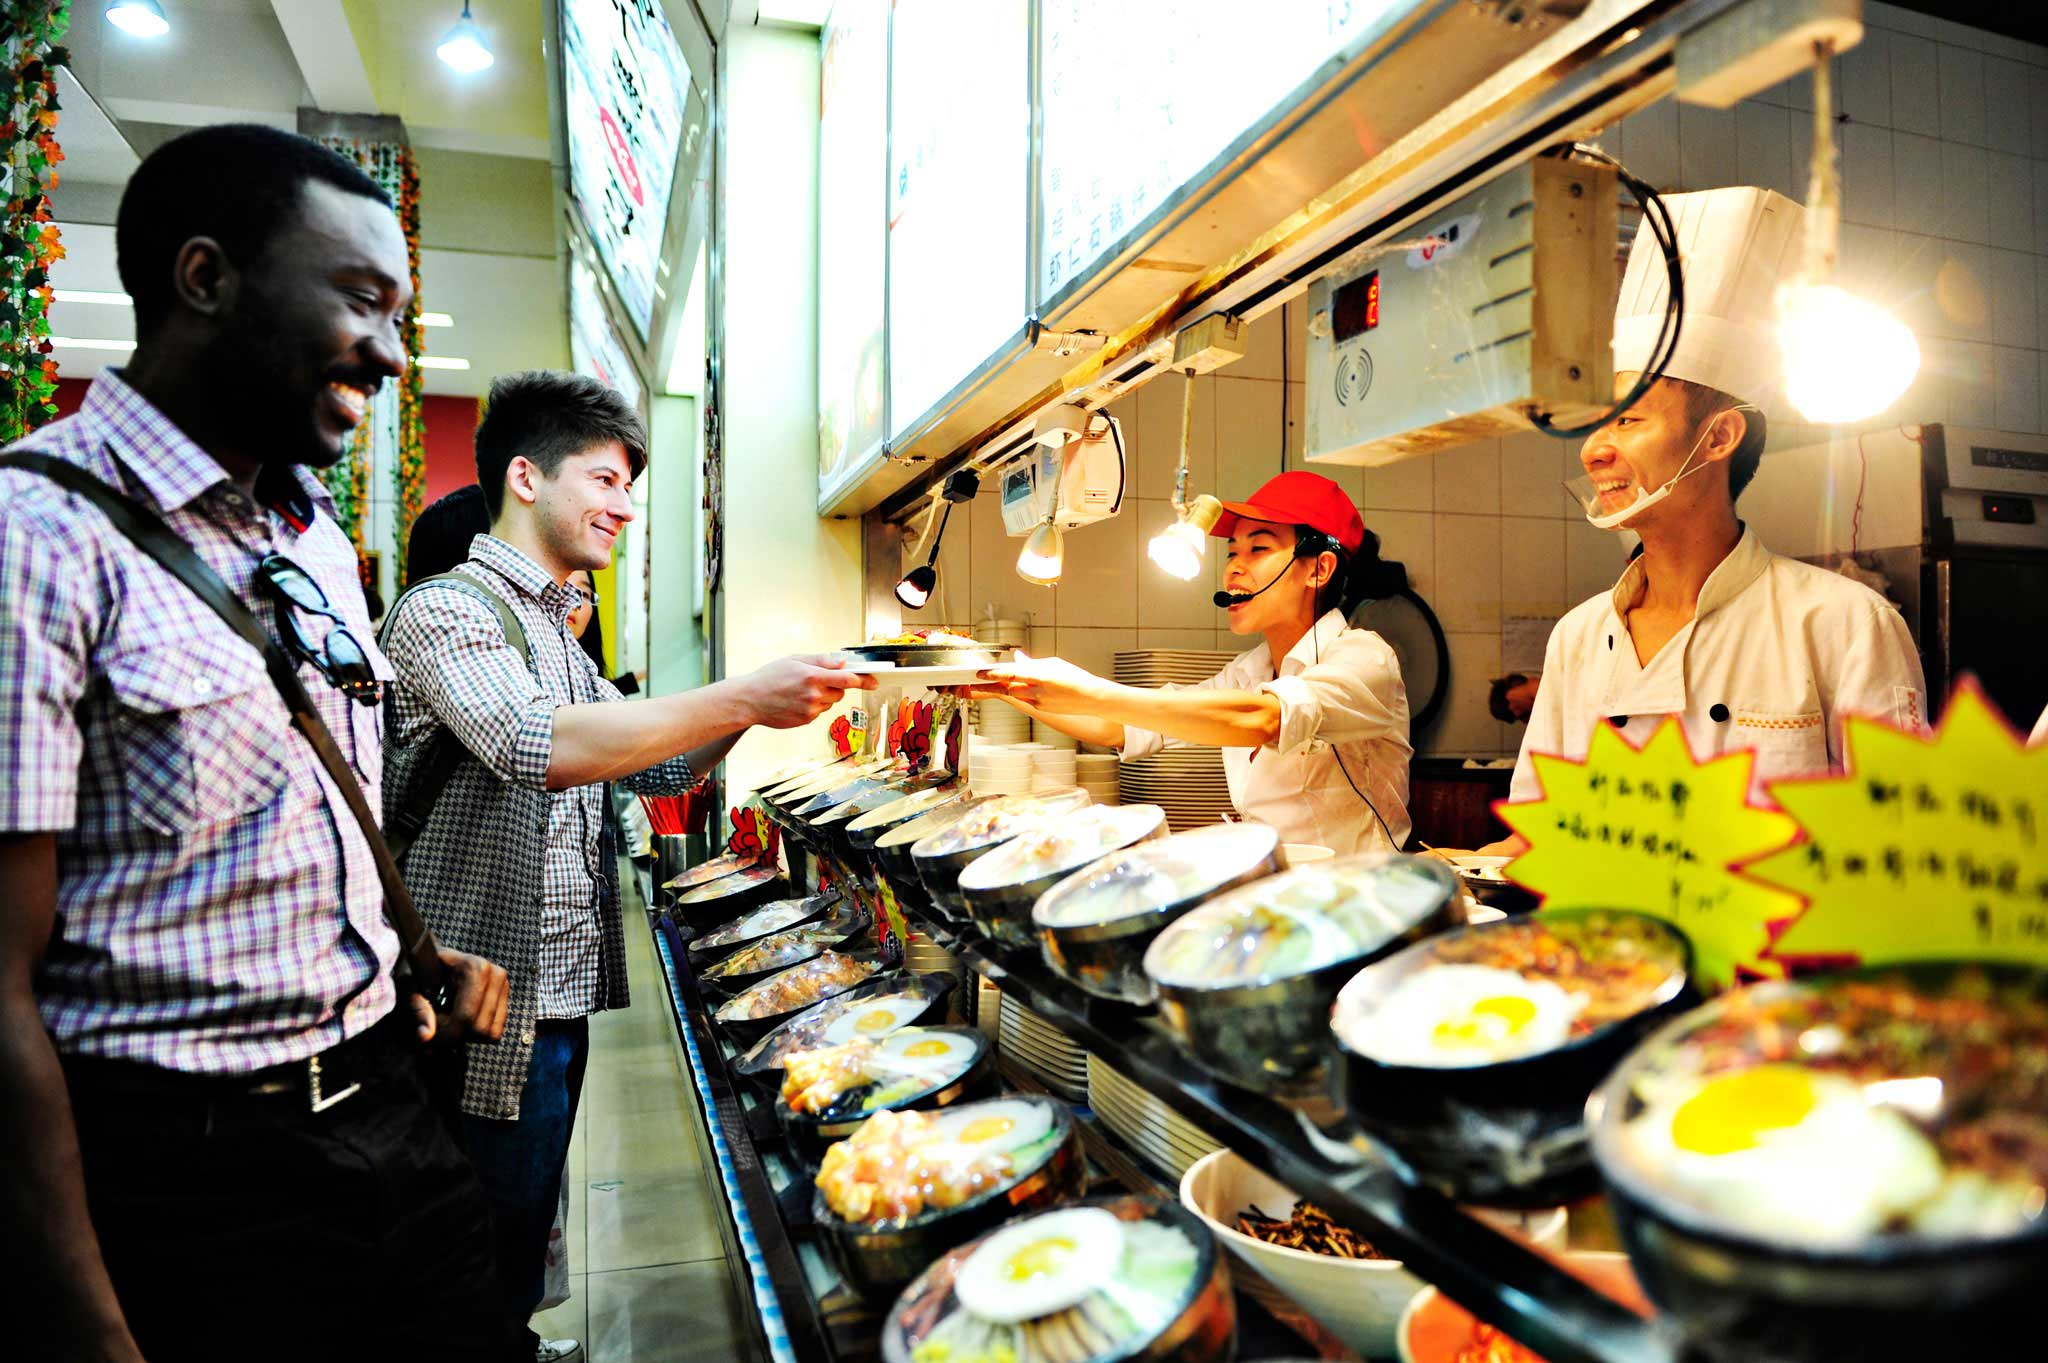 Campus canteens offer lots of choice